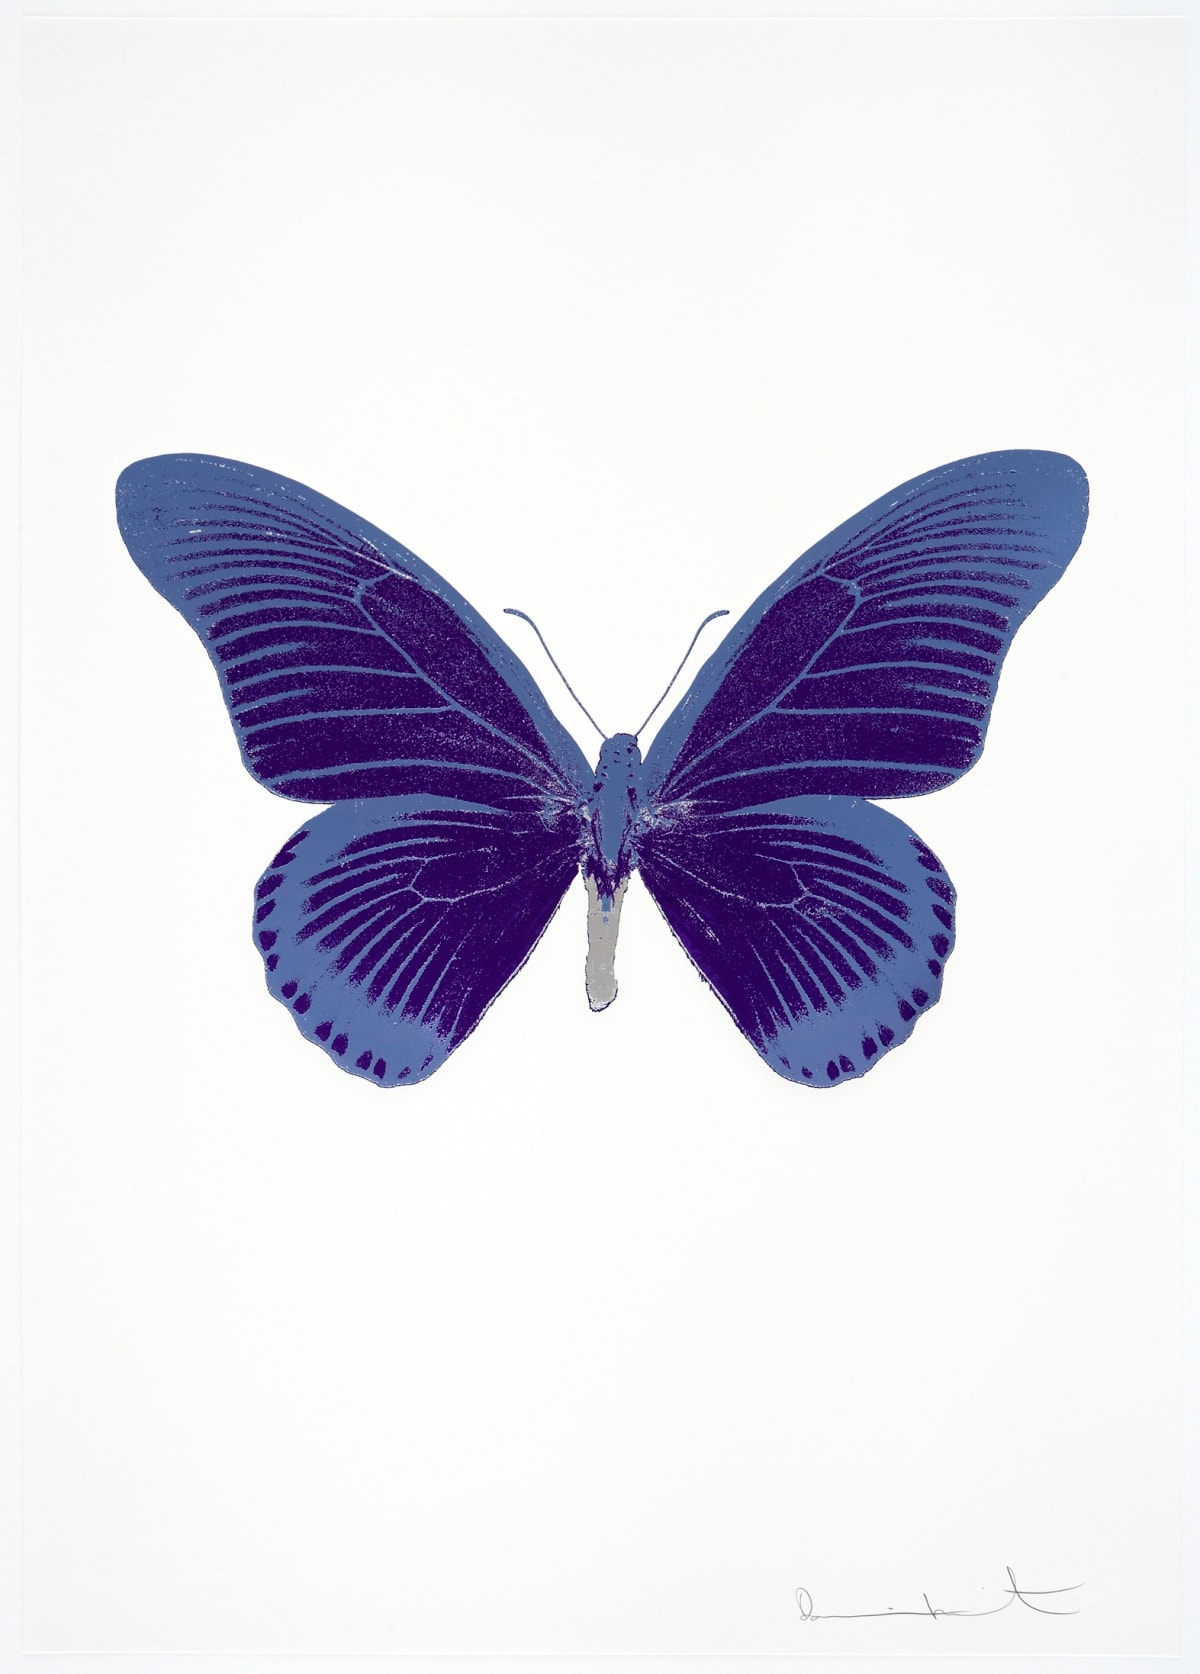 Damien Hirst The Souls IV - Imperial Purple/Cornflower Blue/Silver Gloss, 2010 3 colour foil block on 300gsm Arches 88 archival paper. Signed and numbered. Published by Paul Stolper and Other Criteria 72 x 51cm OC8040 / 1418-63 Edition of 15